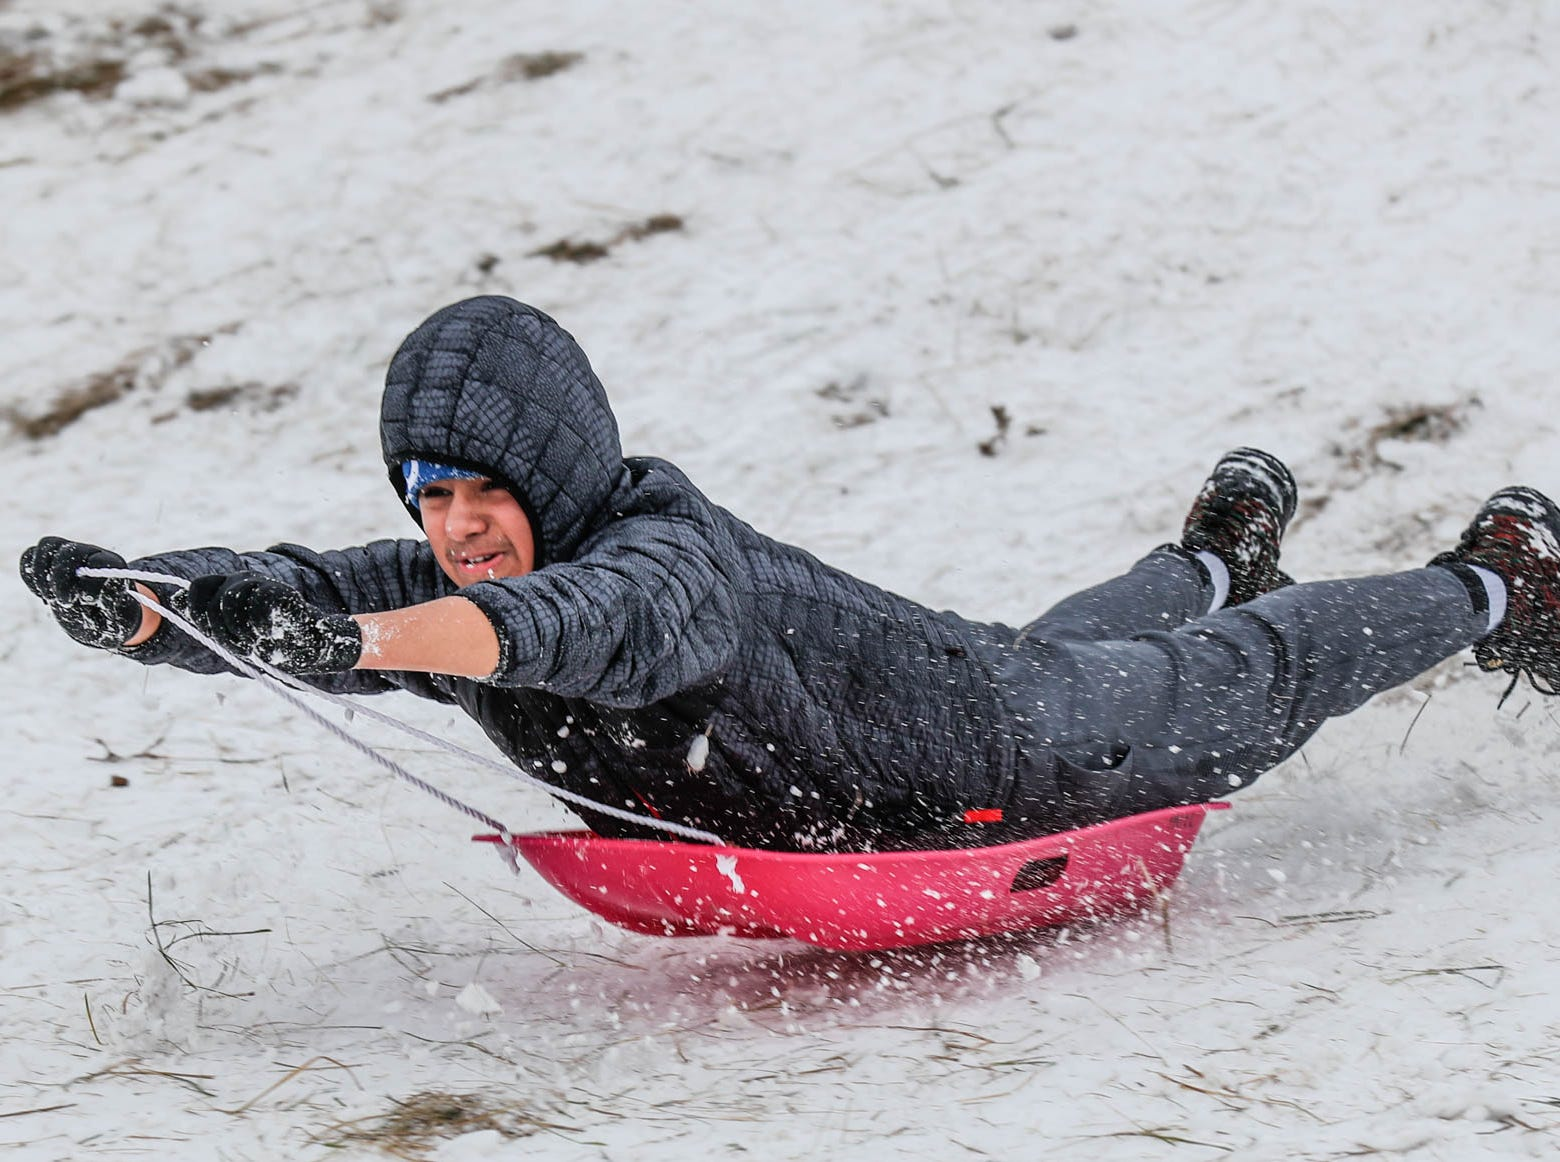 Armaan Patel hits a bump while riding down the sledding hill at West Park in Carmel Ind. on Sunday, Jan. 13, 2019.